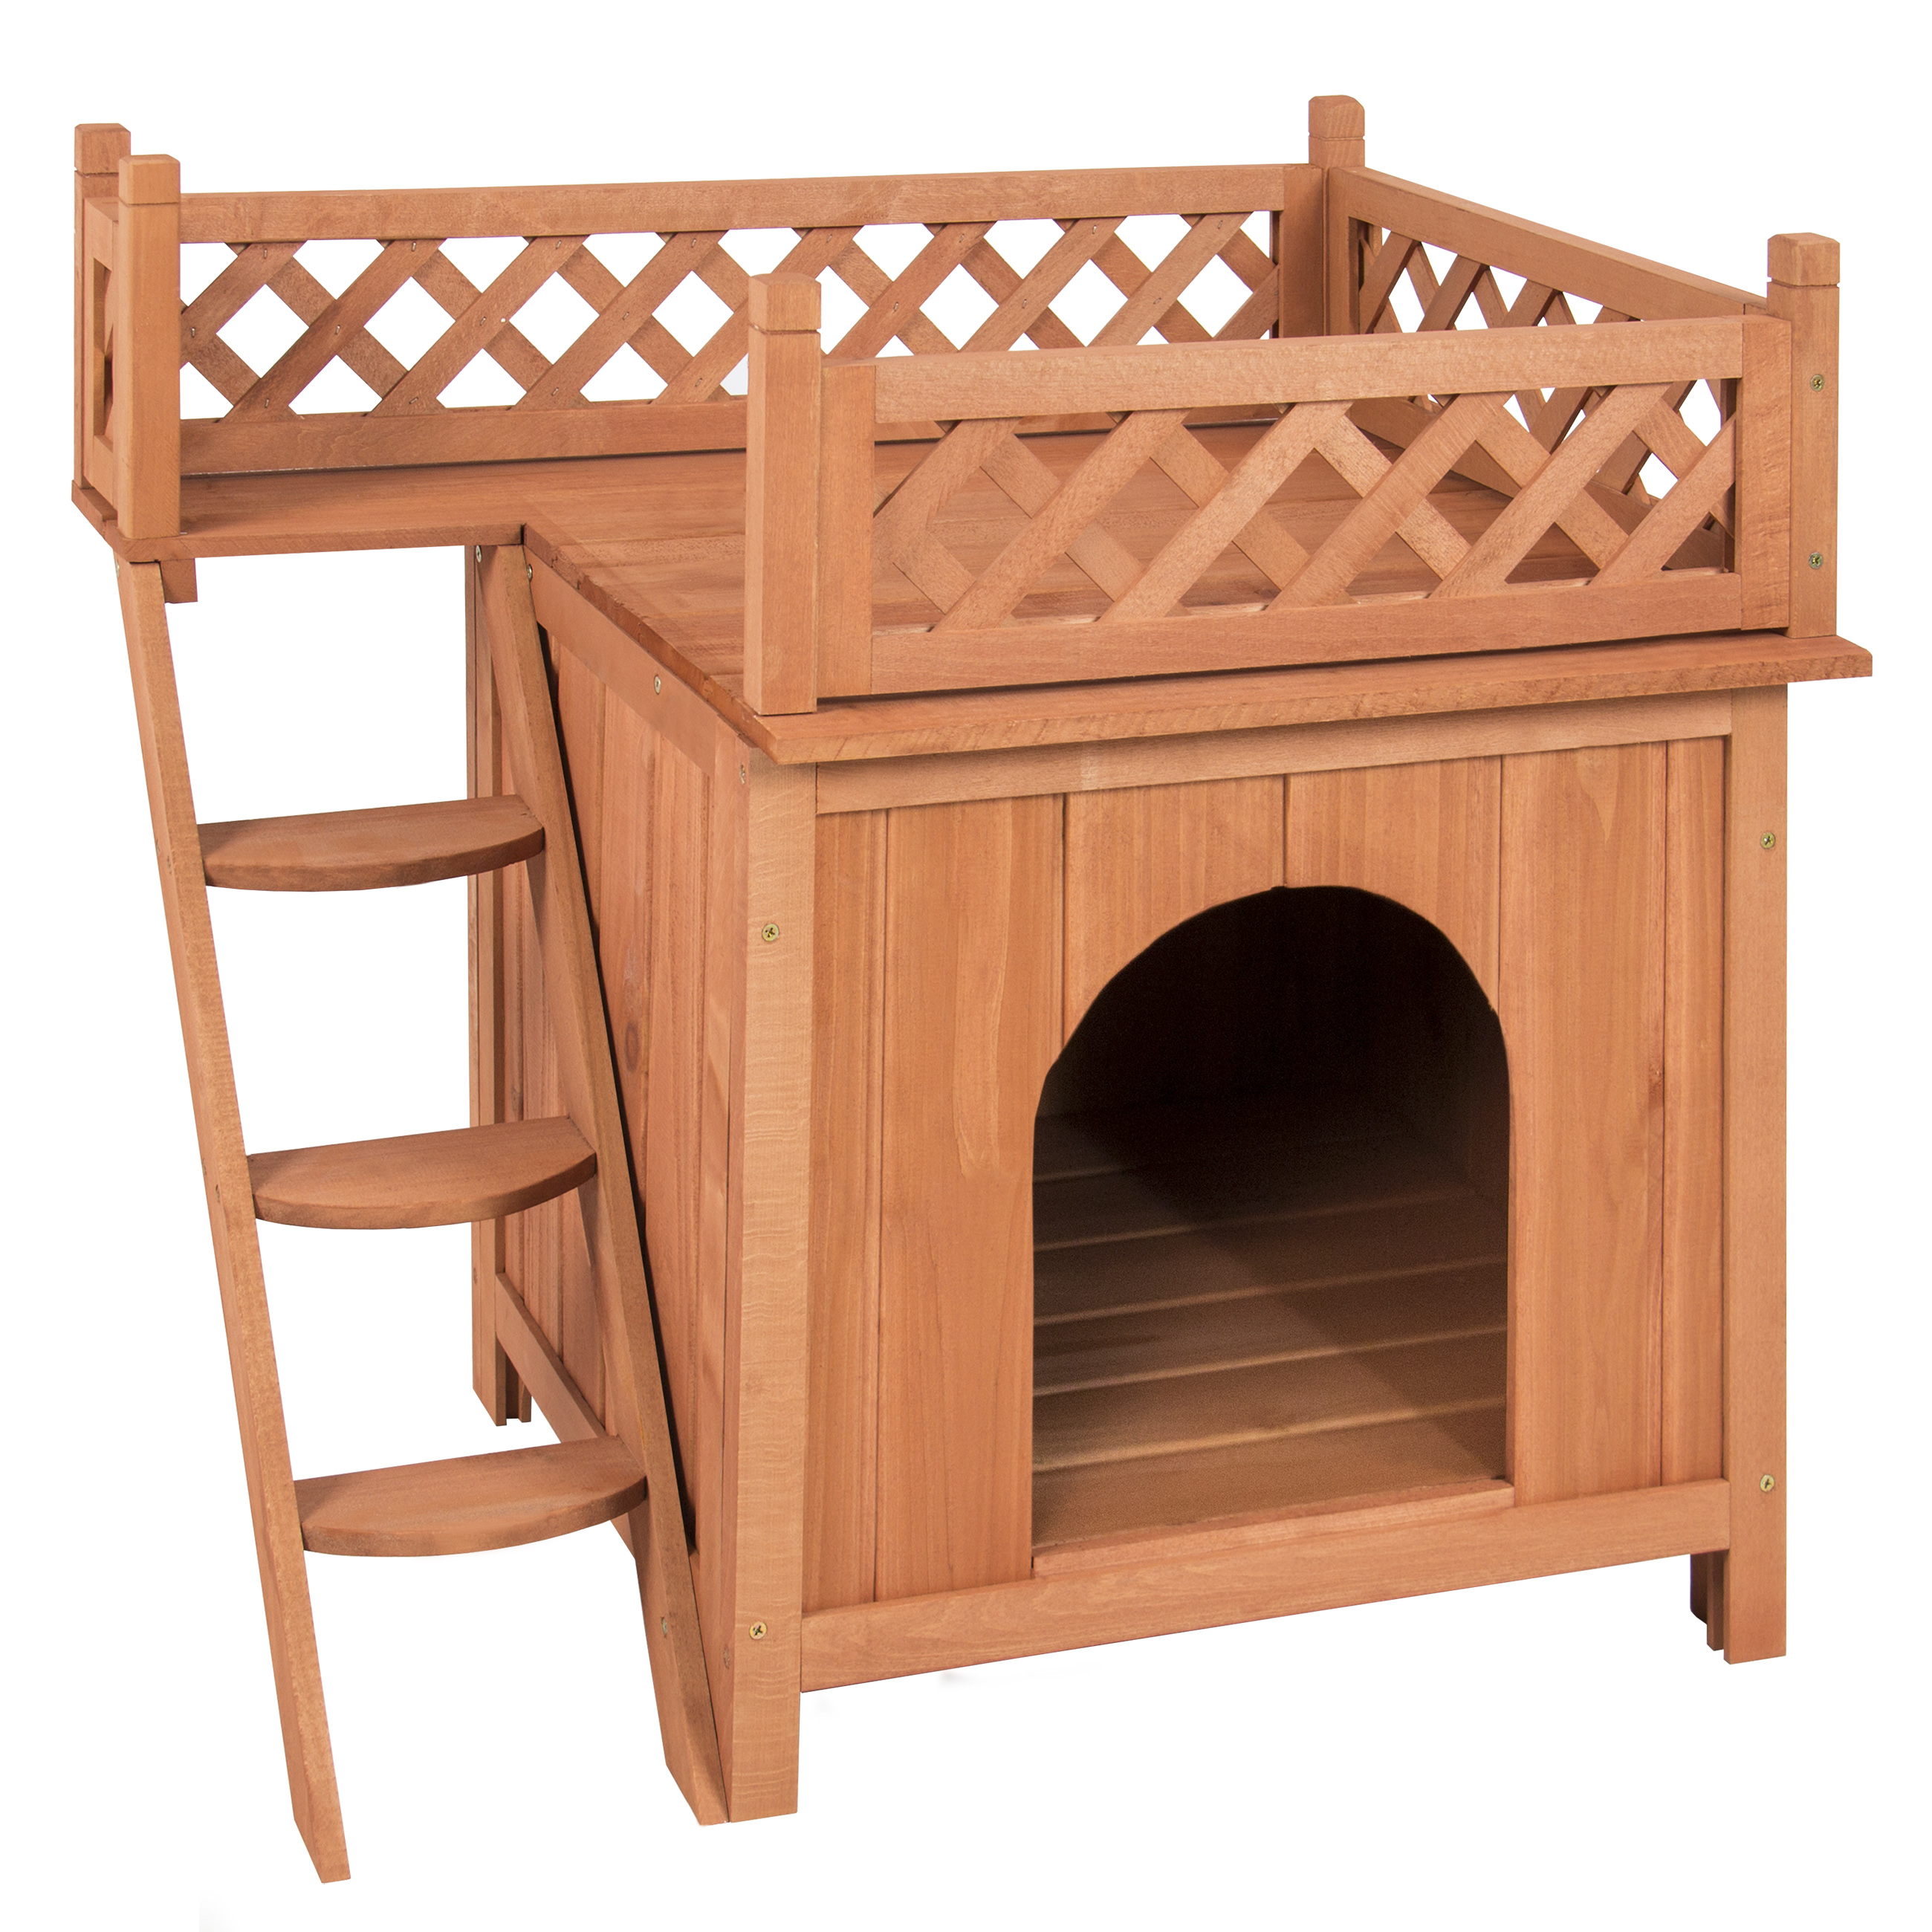 Best Choice Products Wood Dog House Shelter With Raised Roof